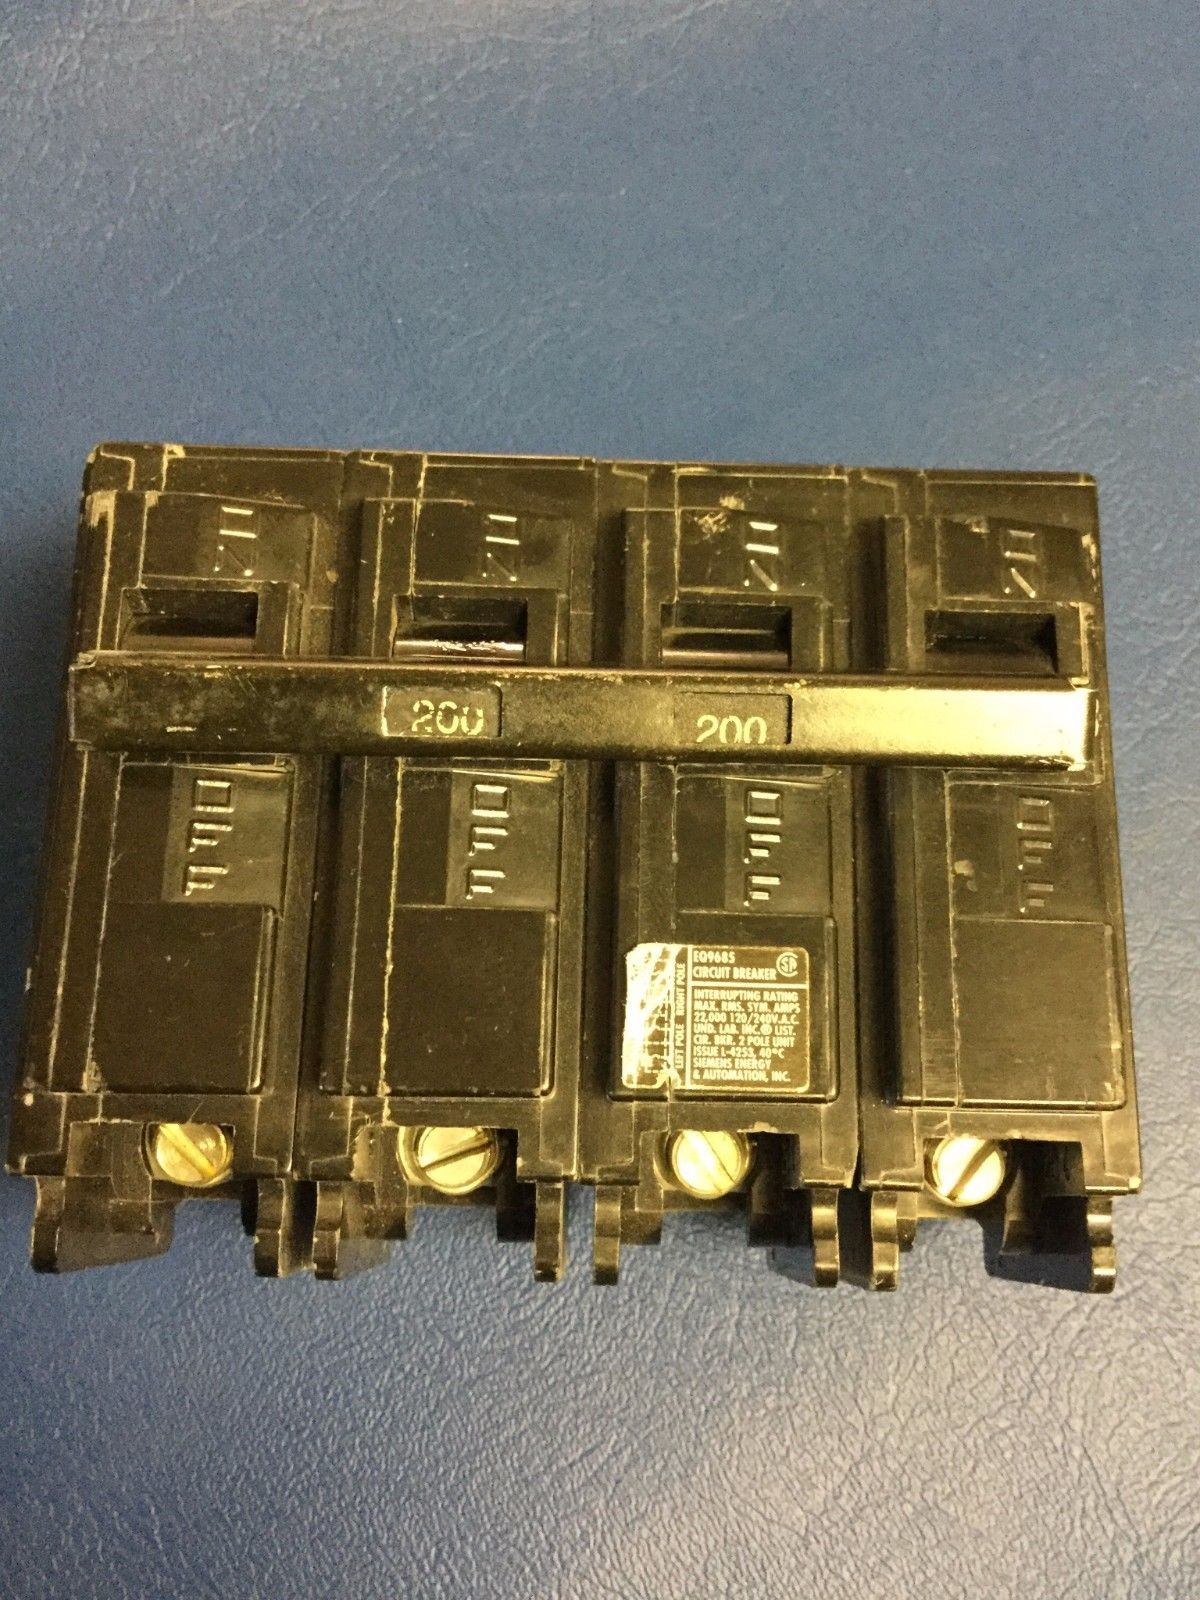 Pushmatic 200 Amp Fuse Box Electrical Wiring Diagrams 400 Siemens Eq 9685 4 Pole Main Breaker And Similar Items Service Panel